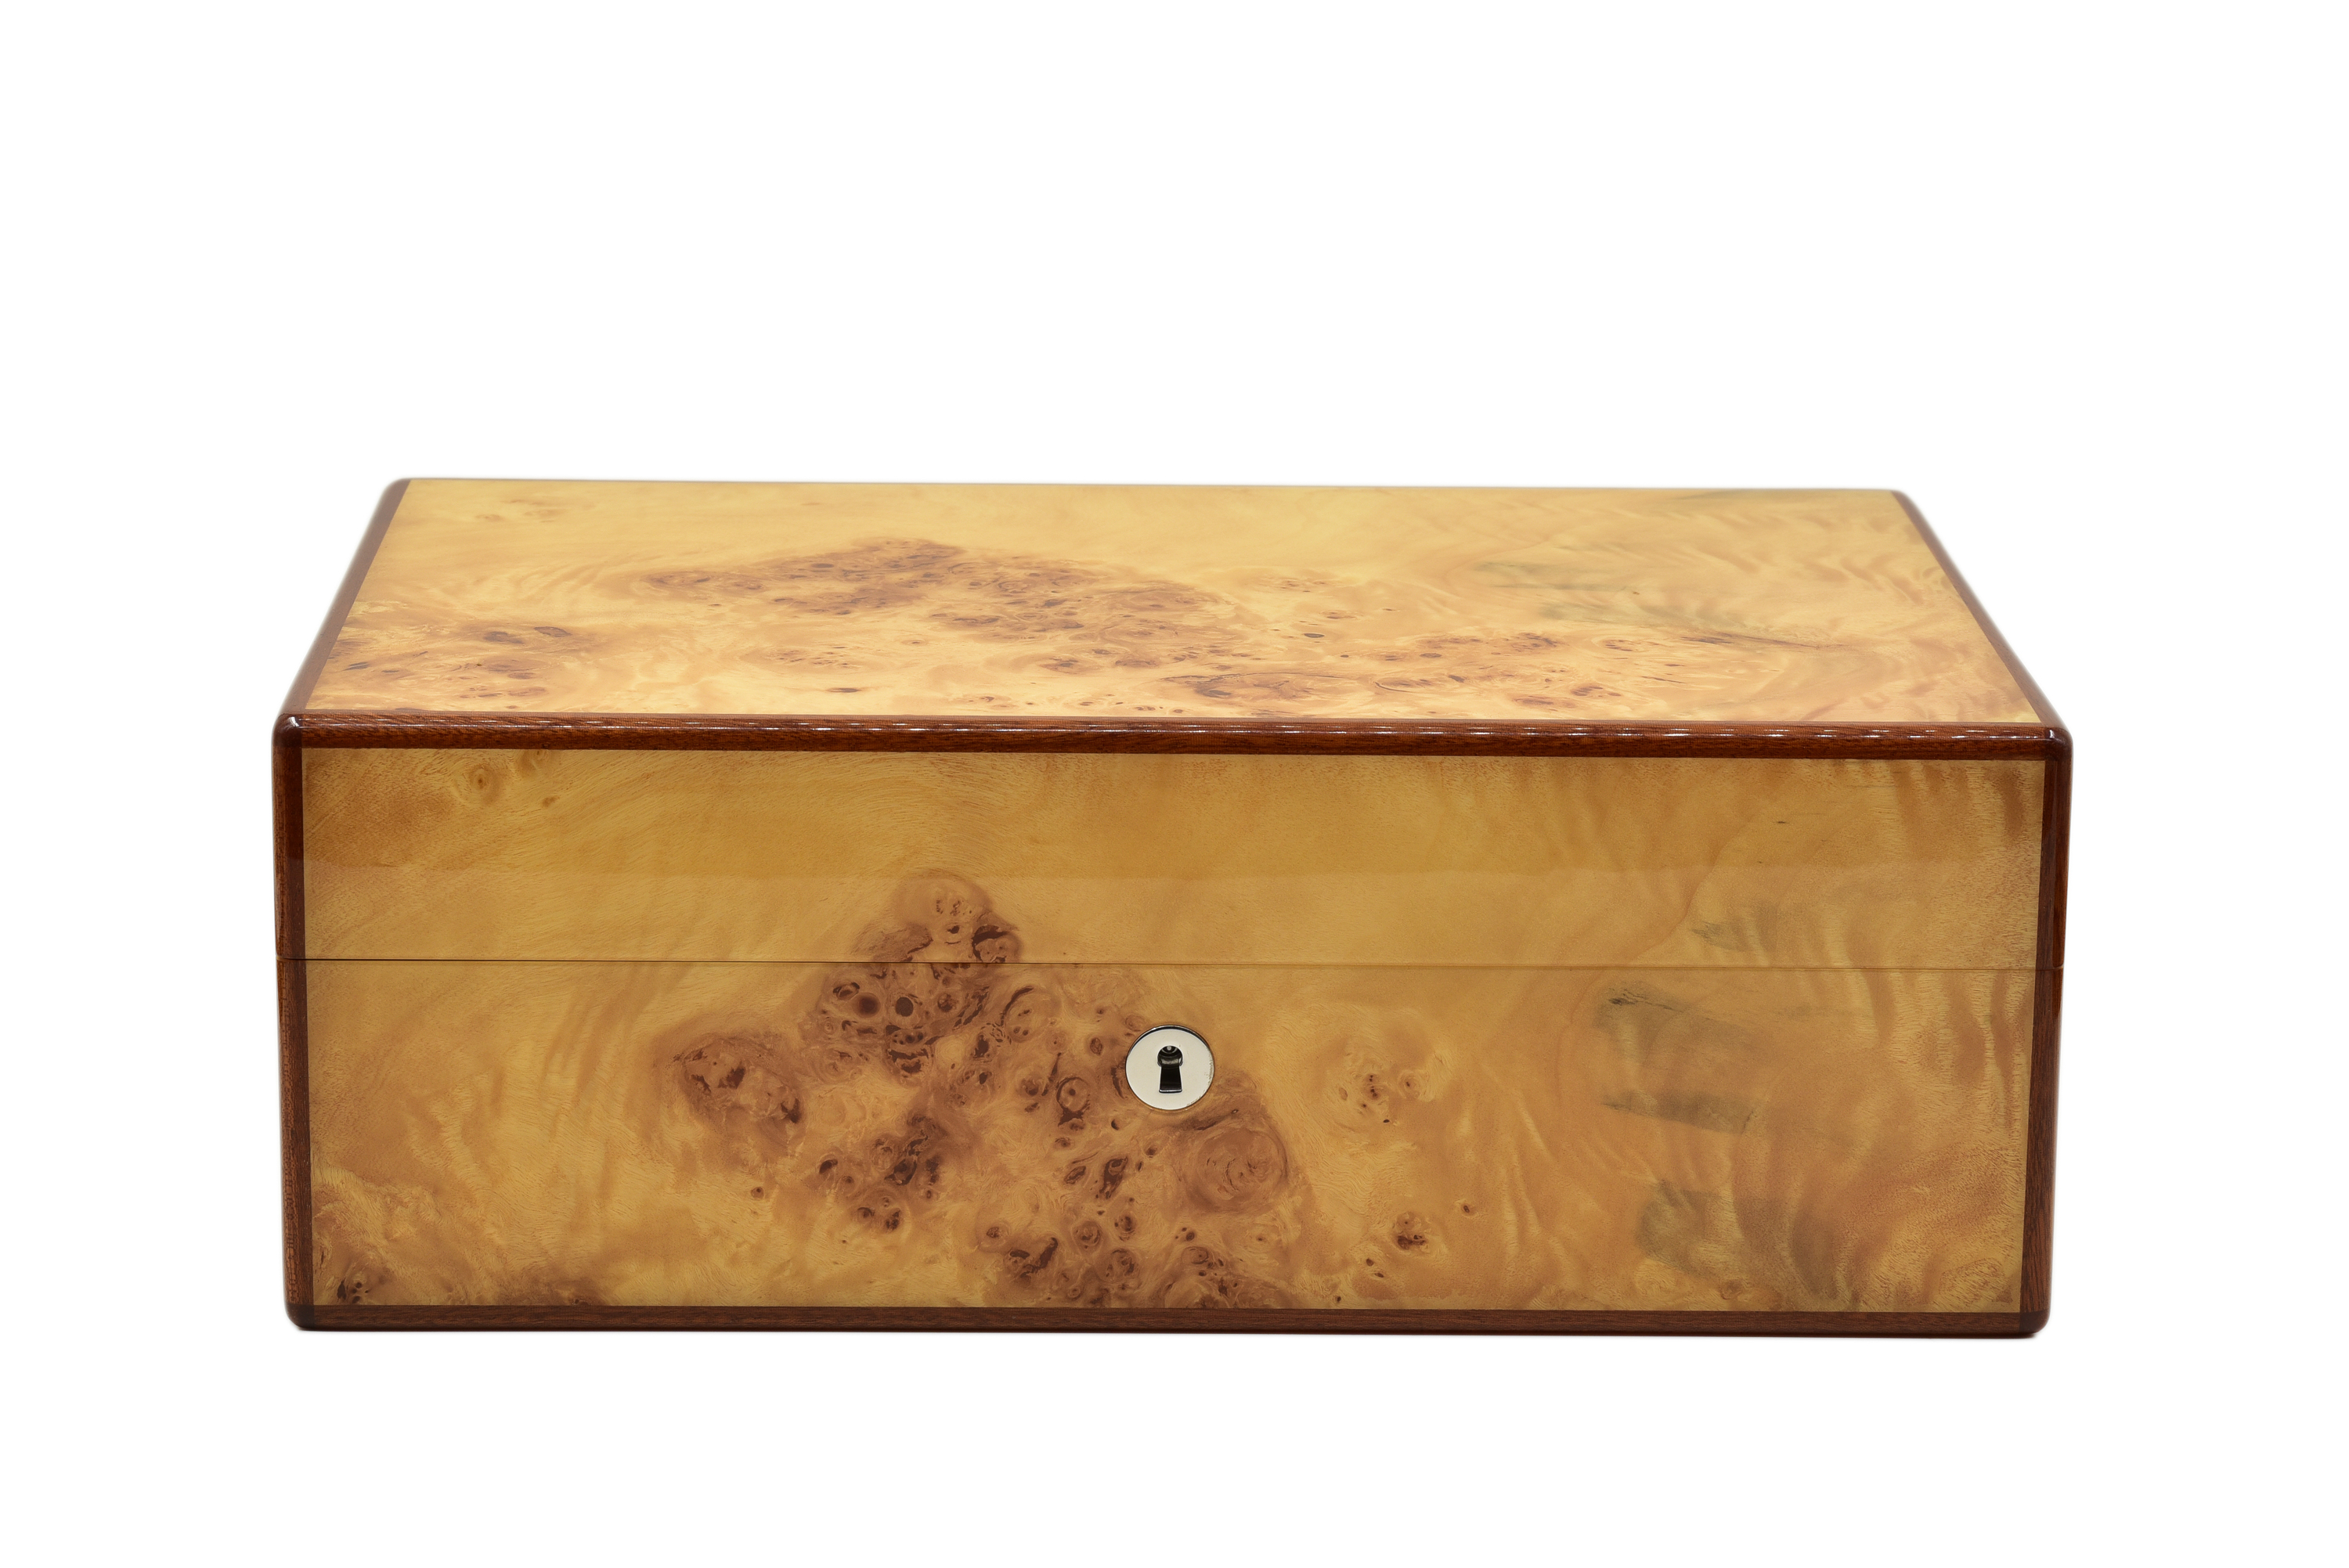 Cigare box - Humidor